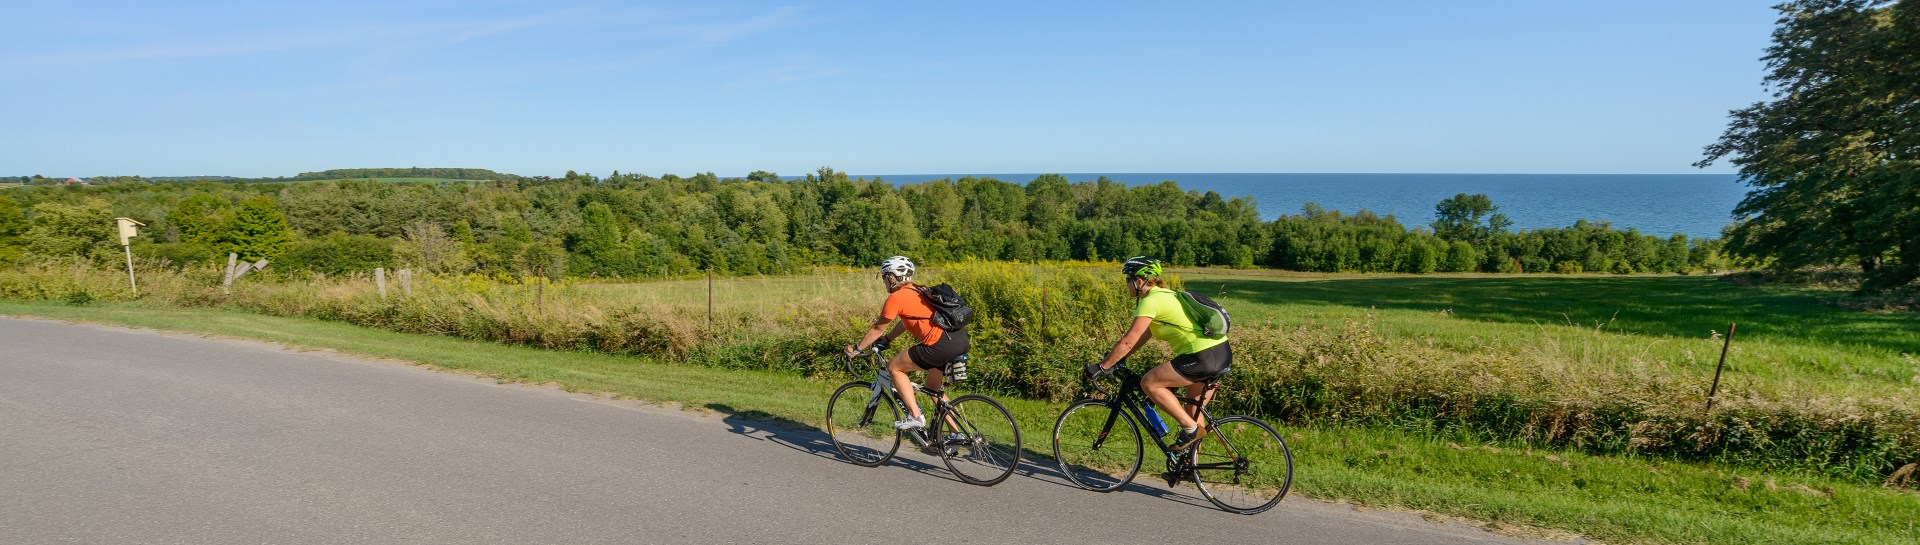 2 female cyclists riding along Lakeshore Drive on a summer day with lake and blue sky in background